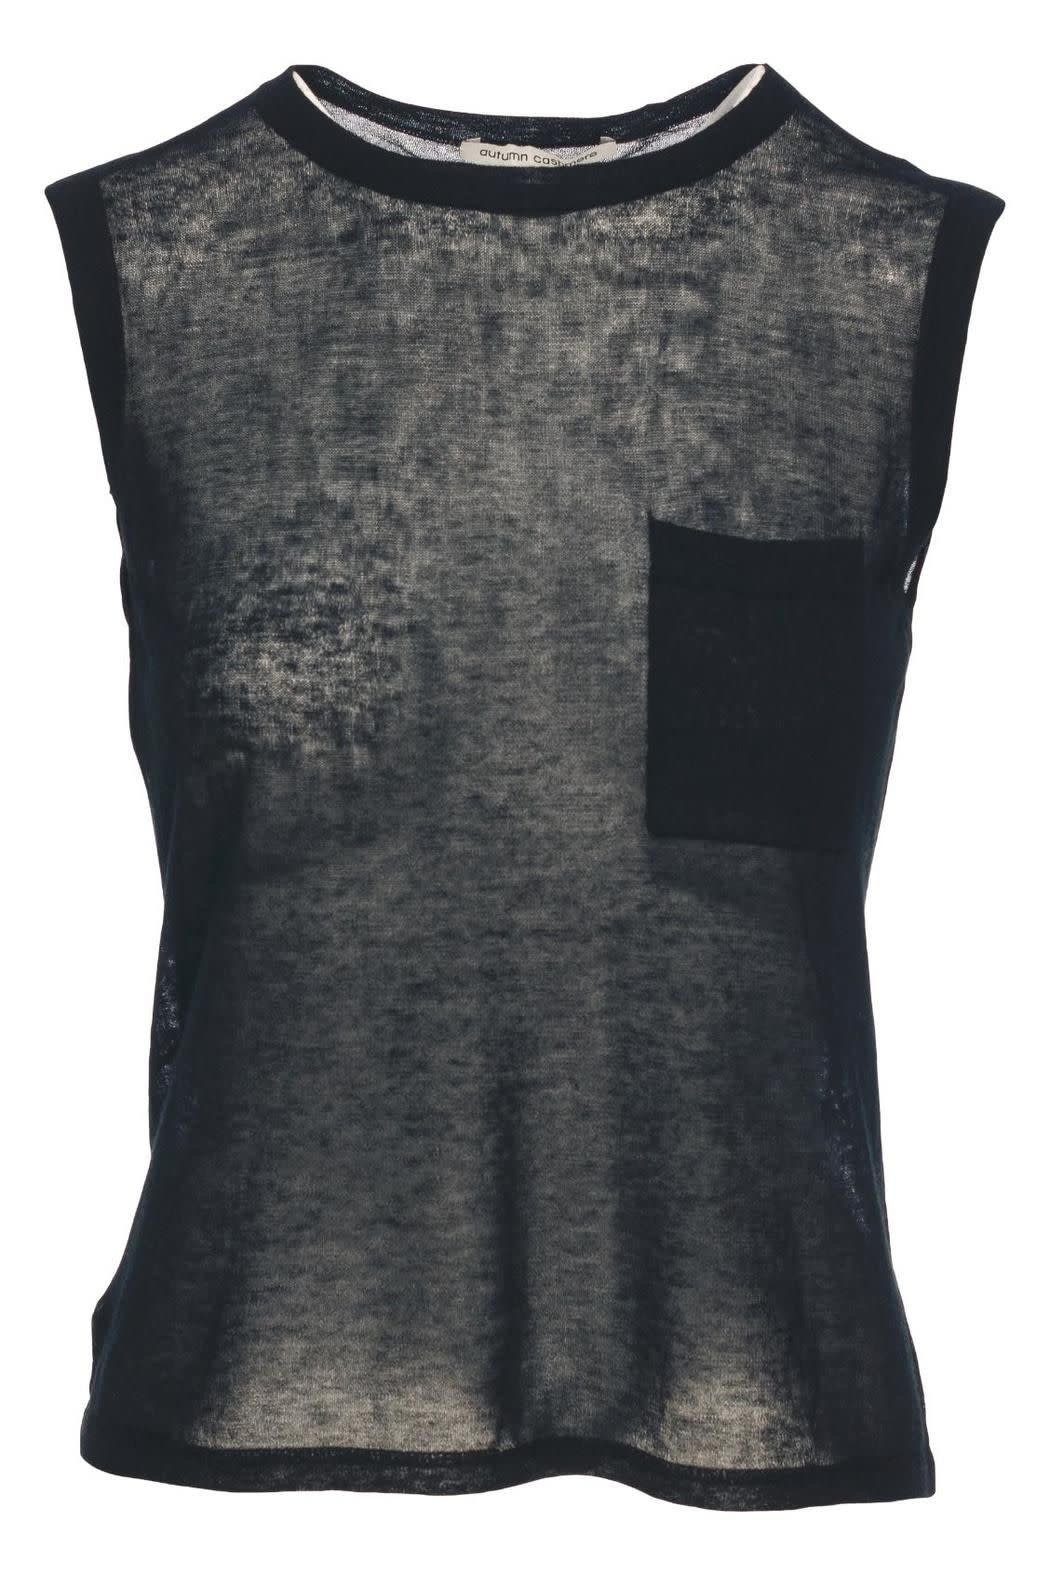 Autumn Cashmere Muscle Tee W/ Pocket